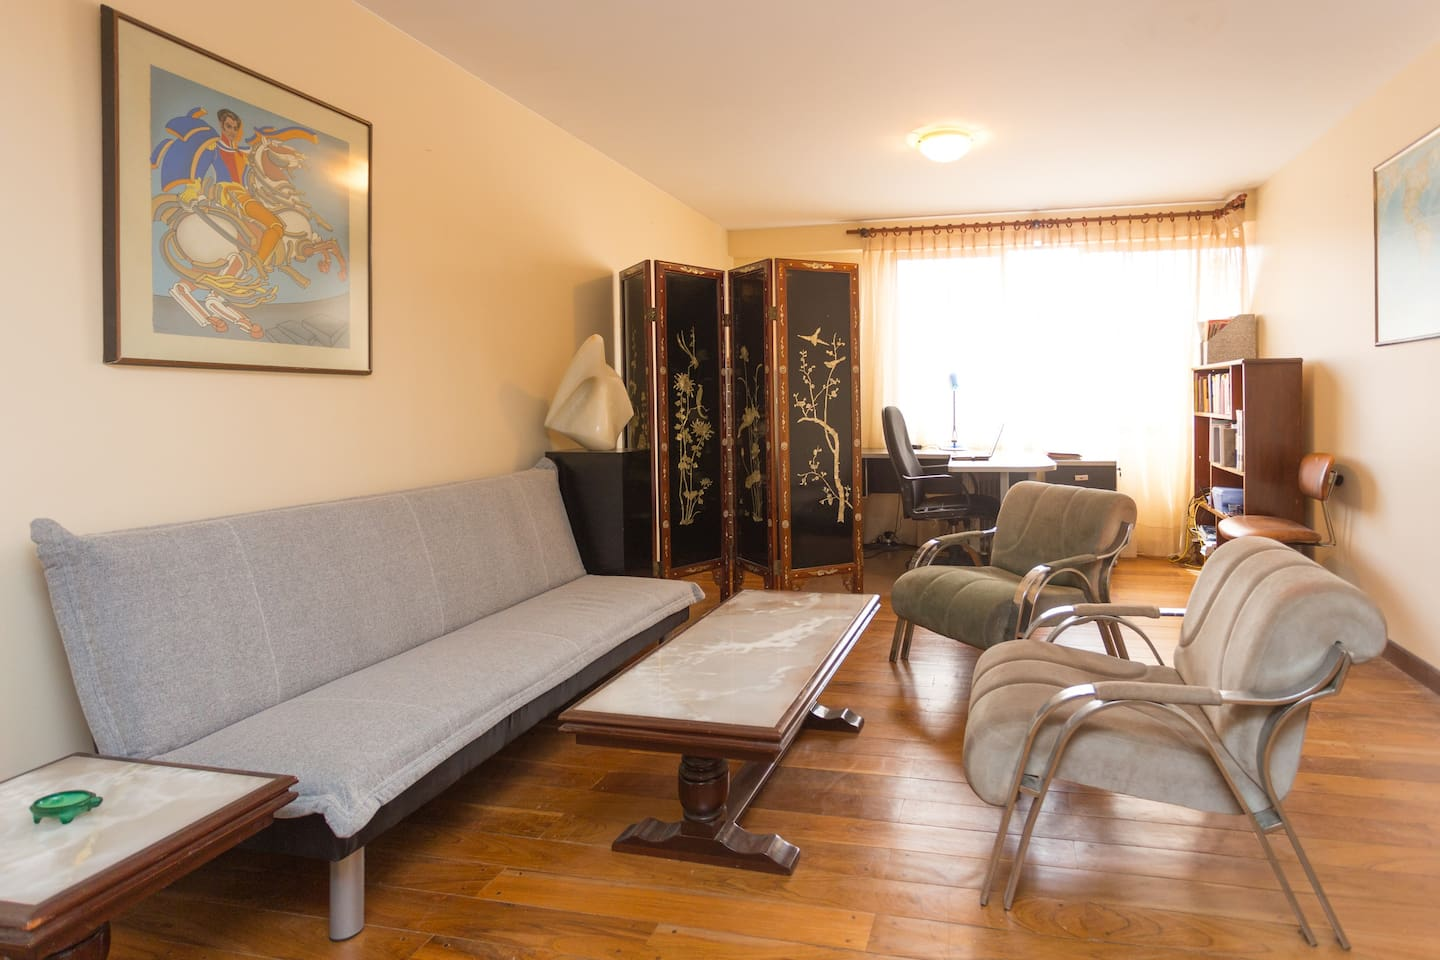 This is the living room as seen upon entering the apartment. ||  Vista de la sala al entrar al departamento.